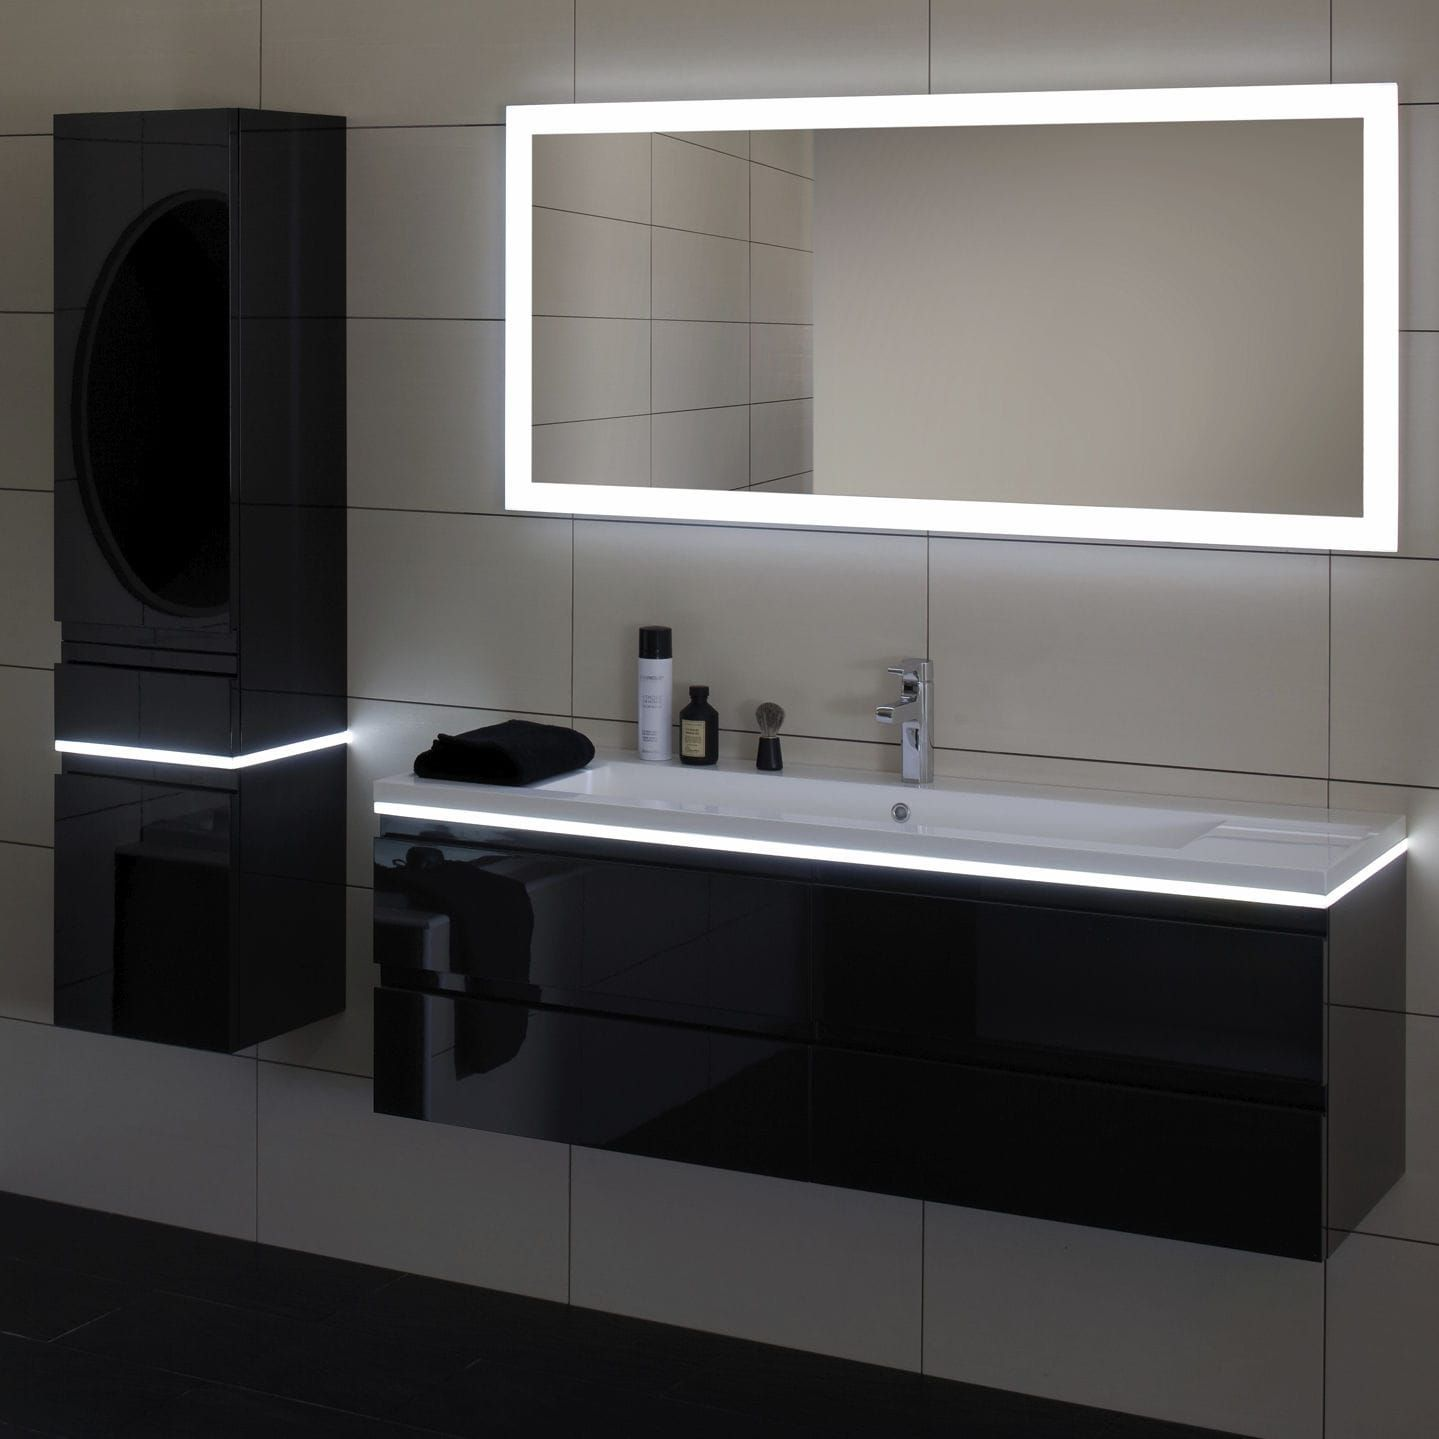 miroir mural contemporain rectangulaire lumineux led halo sanijura baderie woonrijk. Black Bedroom Furniture Sets. Home Design Ideas